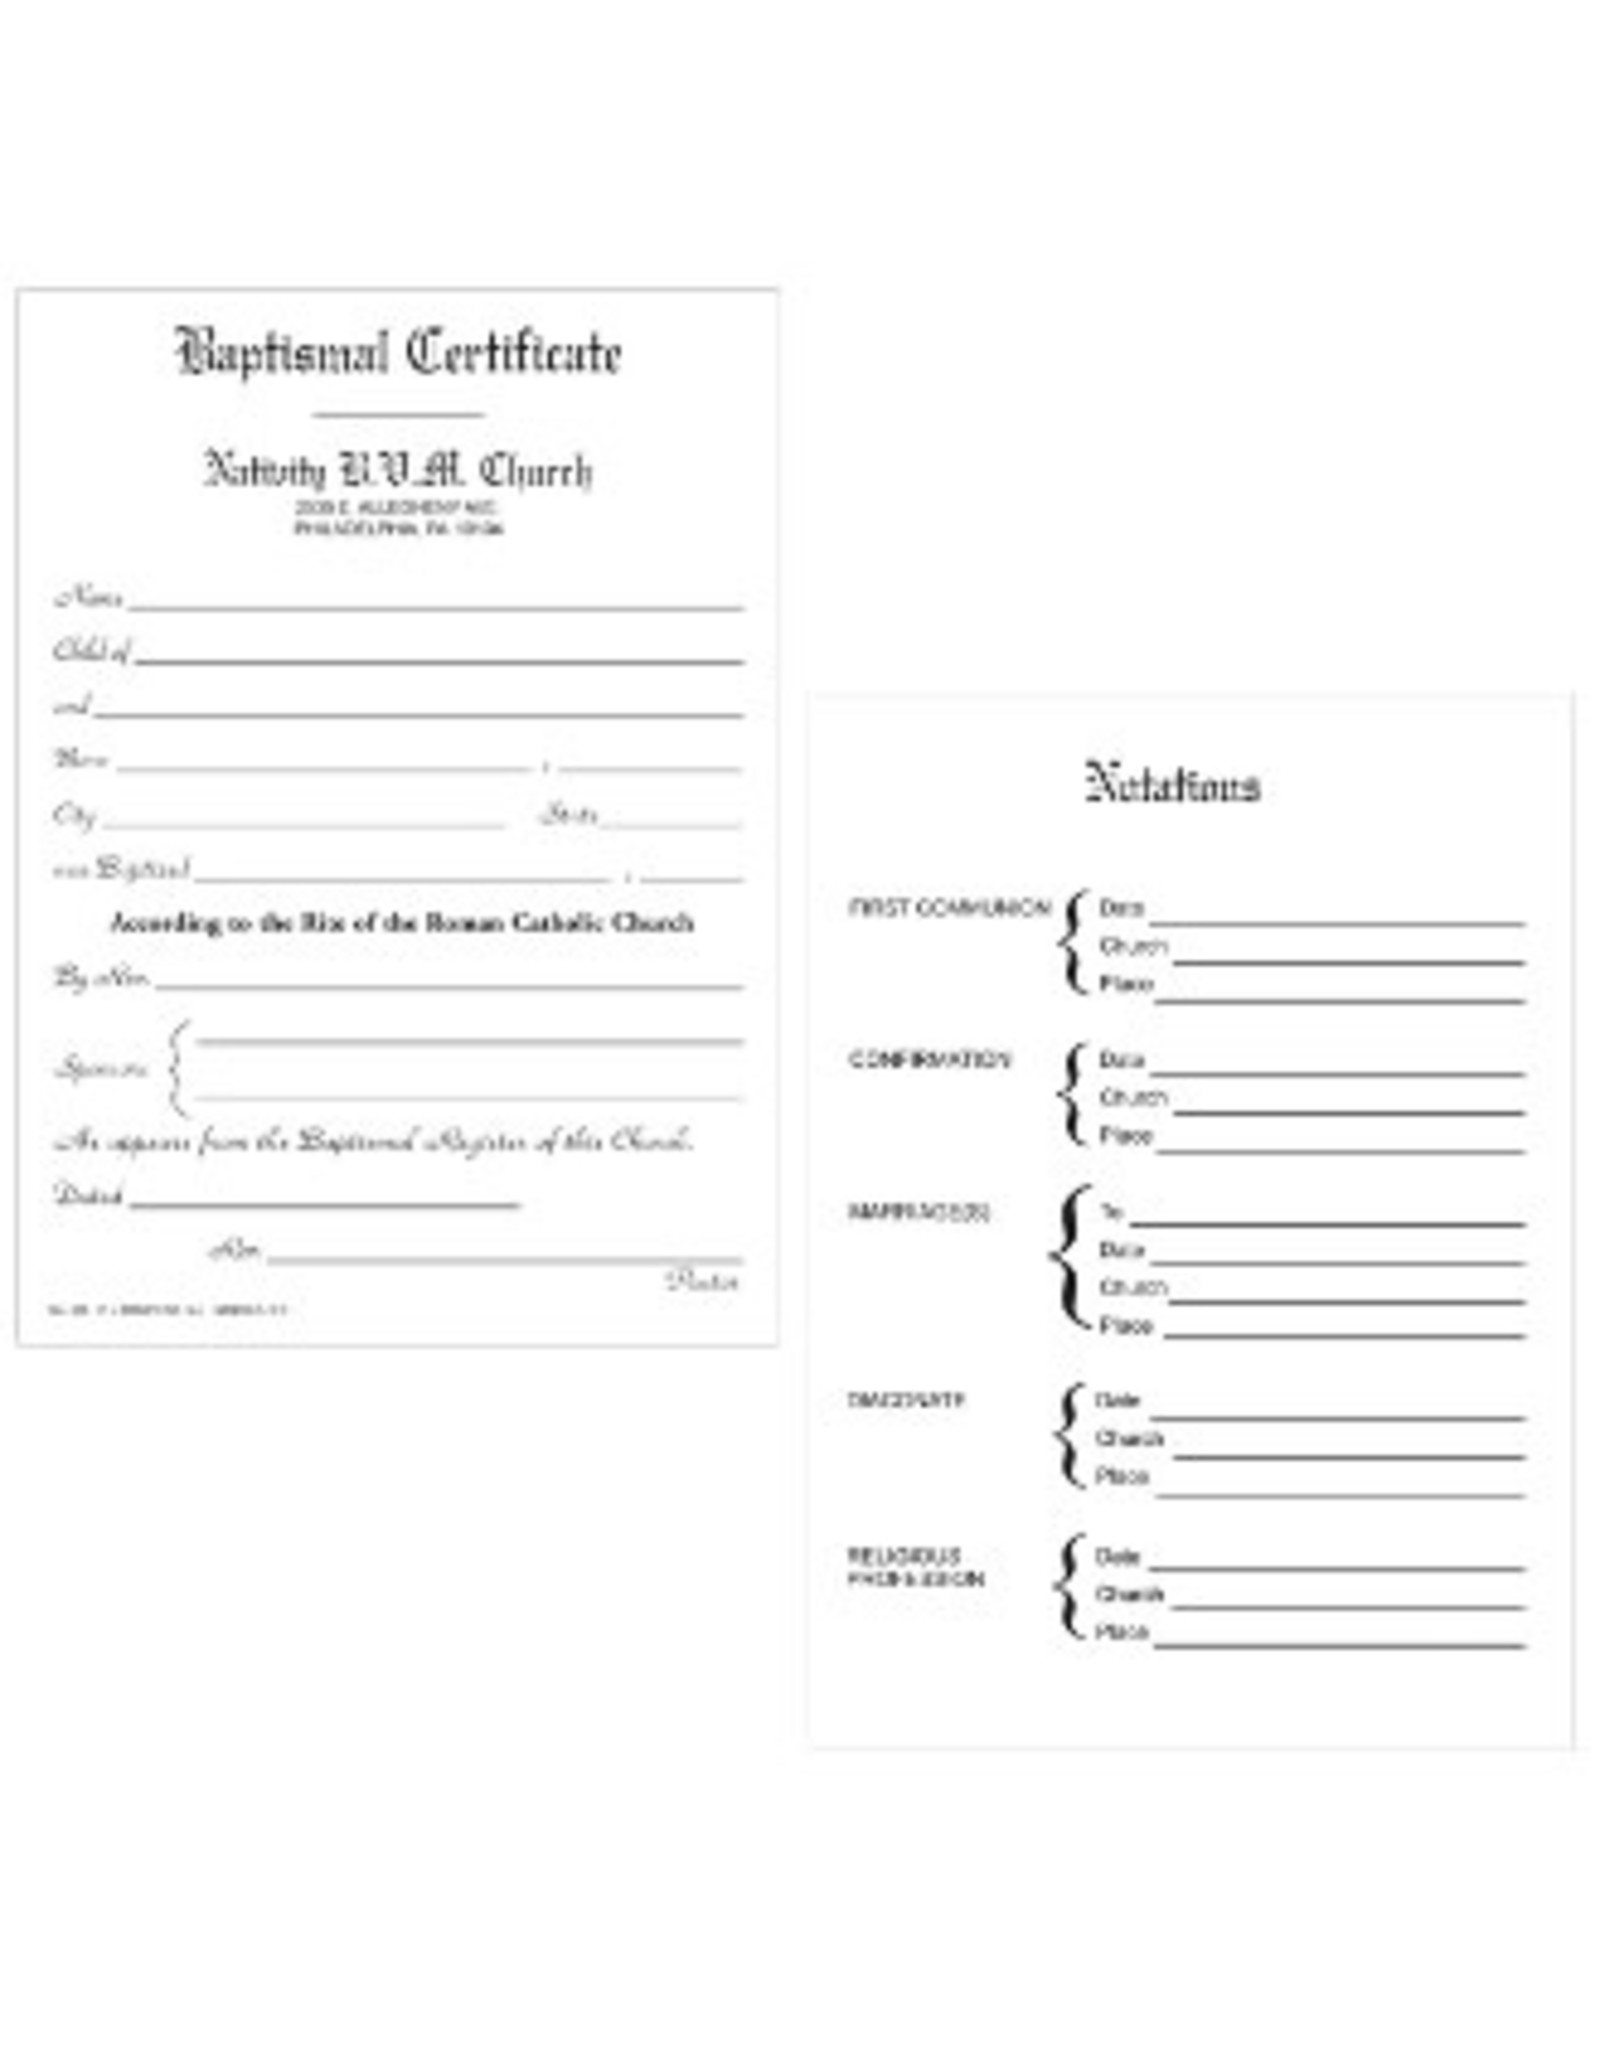 Baptismal Forms - Certificate (Pad of 50)